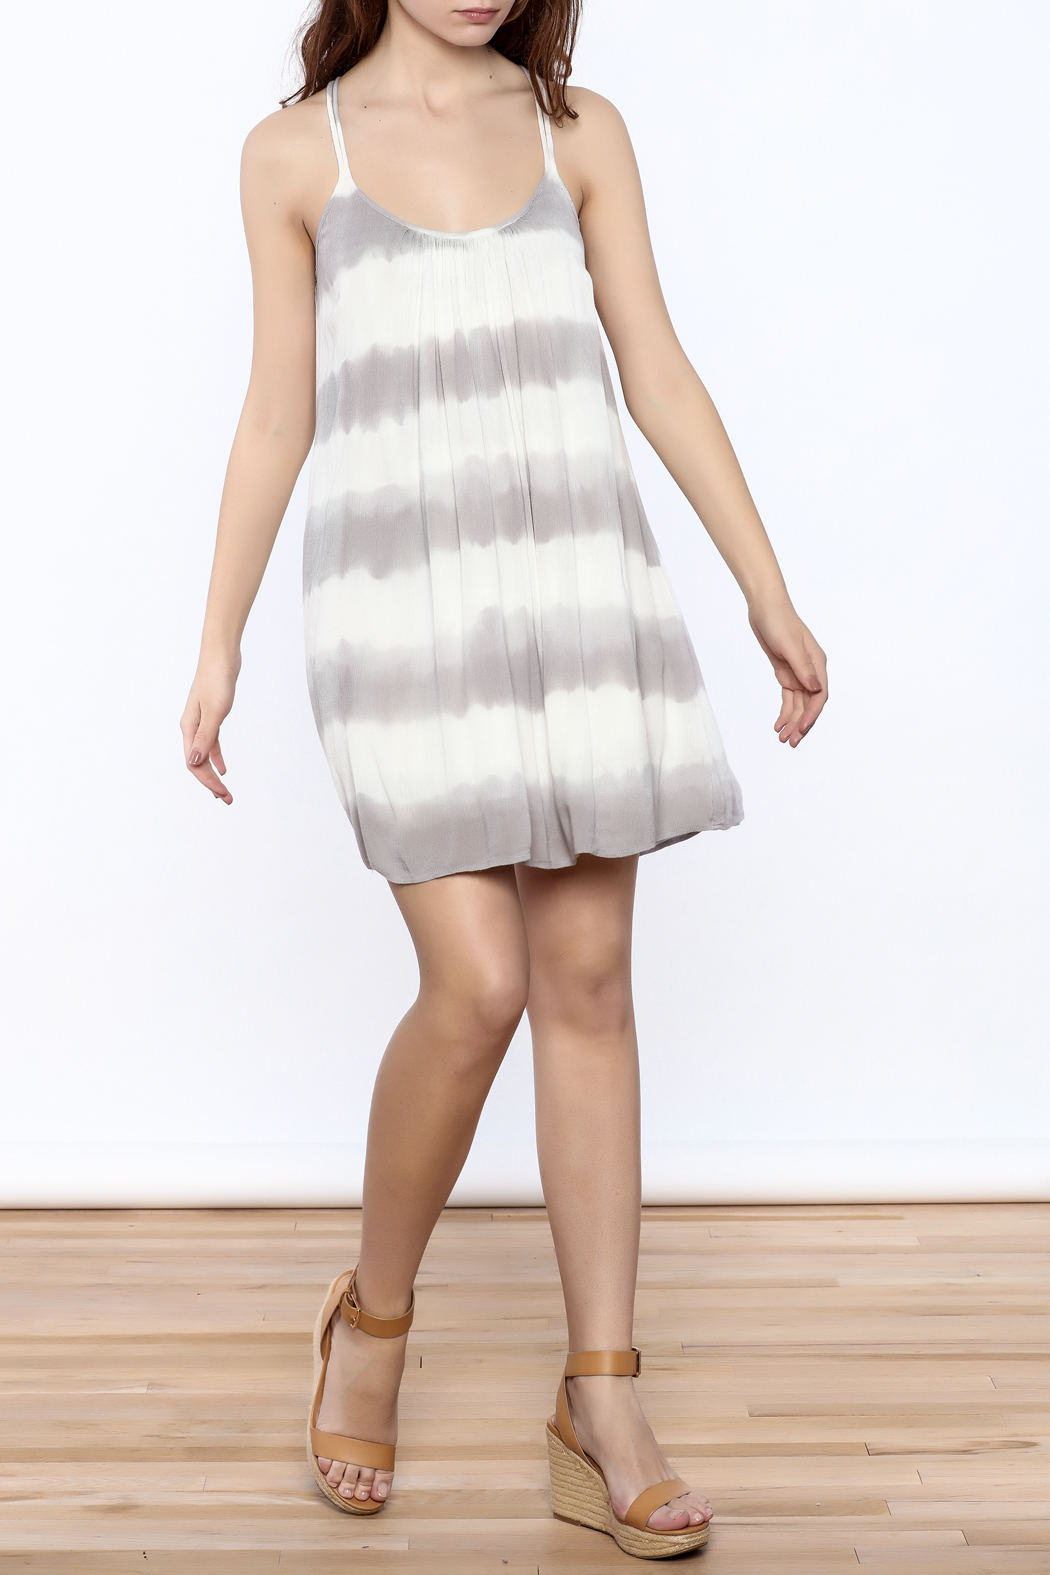 Find great deals on eBay for beach dresses. Shop with confidence.